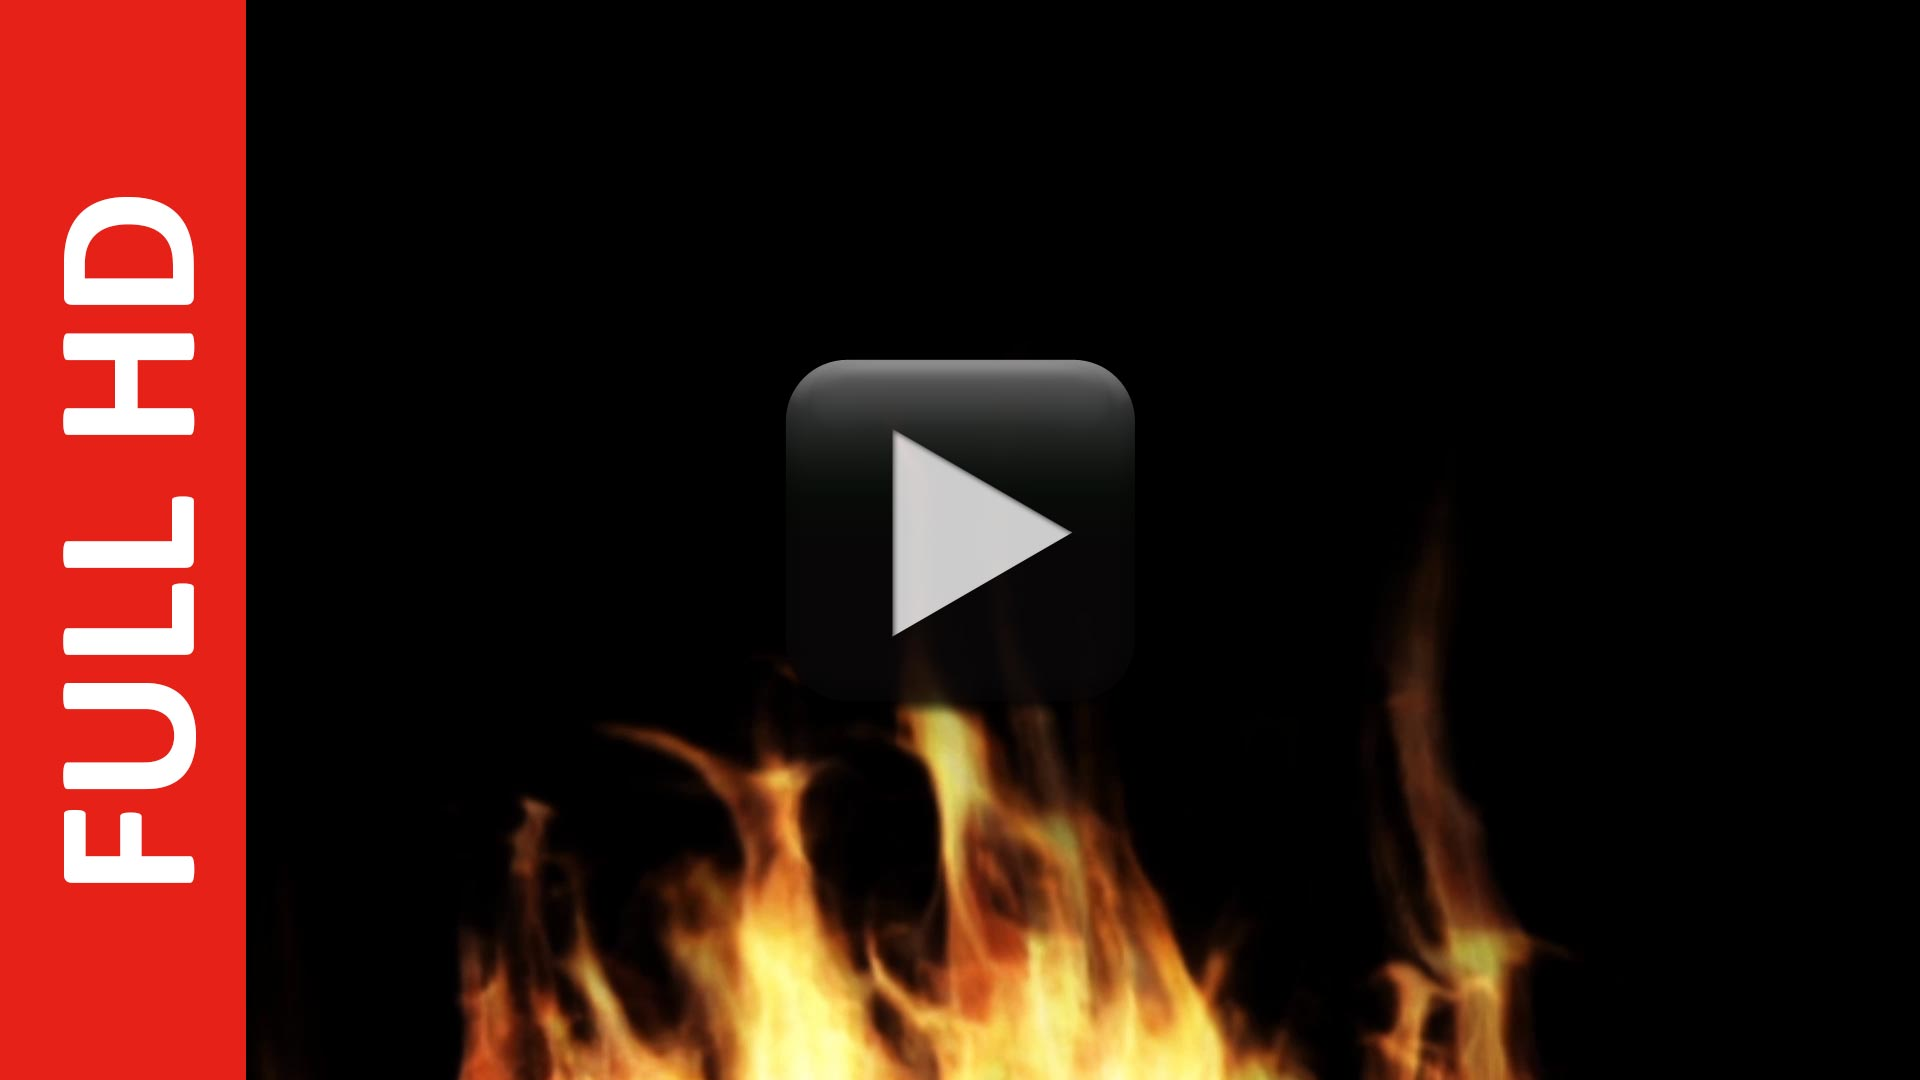 Free fire stock footage hd | black, blue, green, white screen video effect